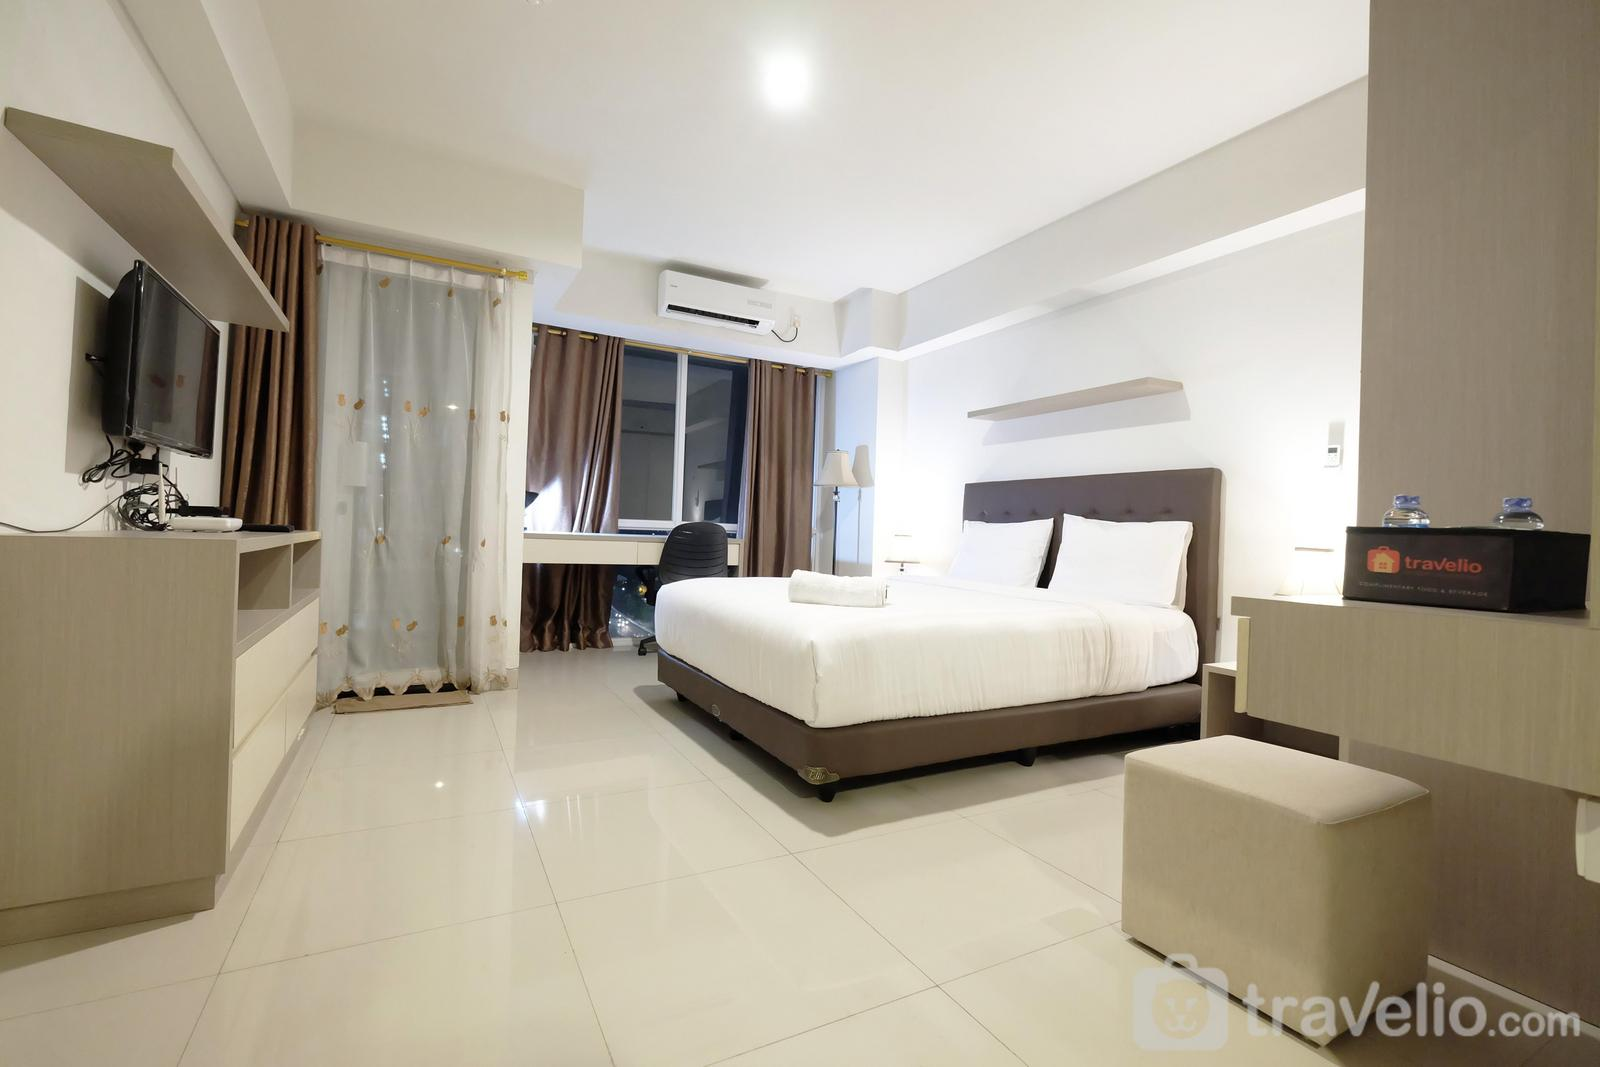 H Residence - Best Price Spacious Studio Apartment @ The H Residence near MT Haryono By Travelio